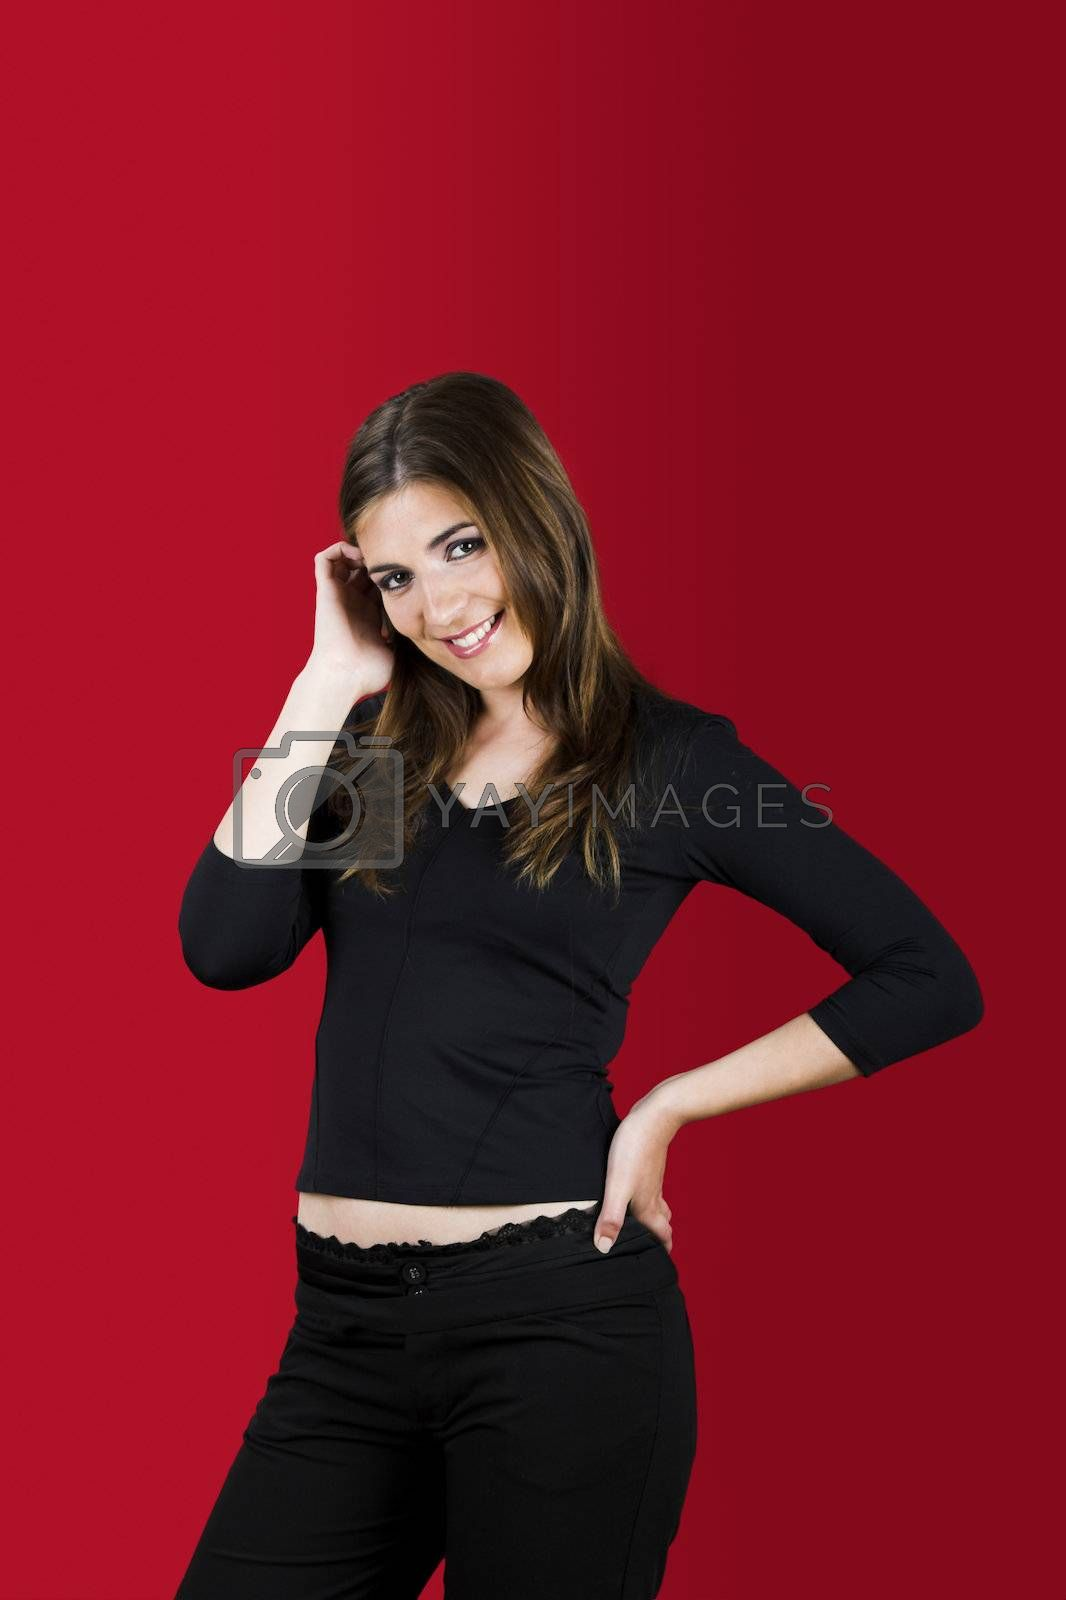 Portrait of a beautiful woman on a red background